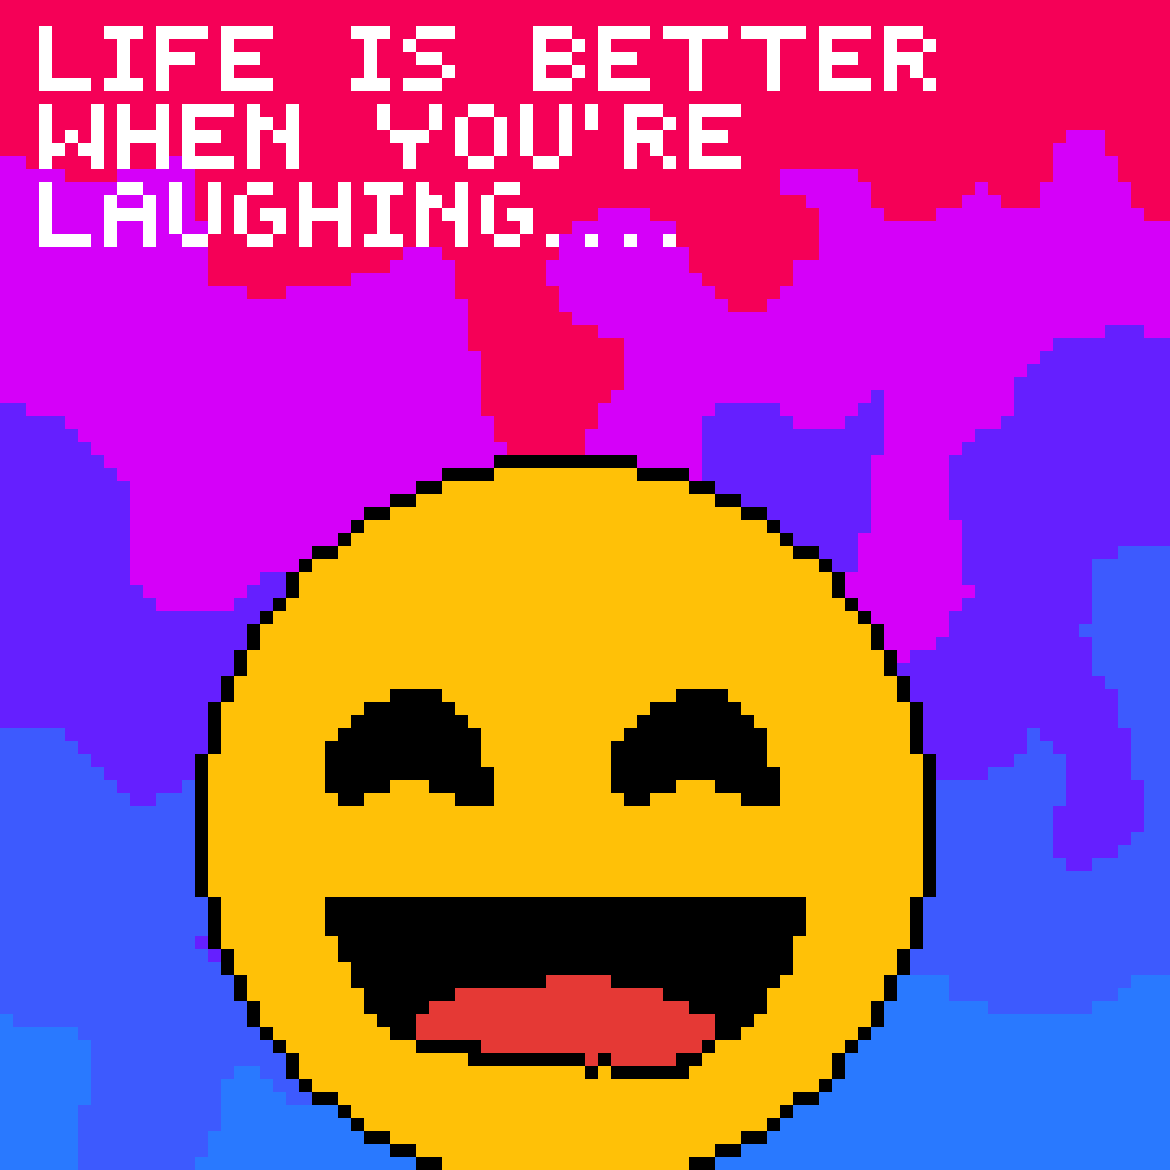 Laughing=Better life by EricaJacqueline